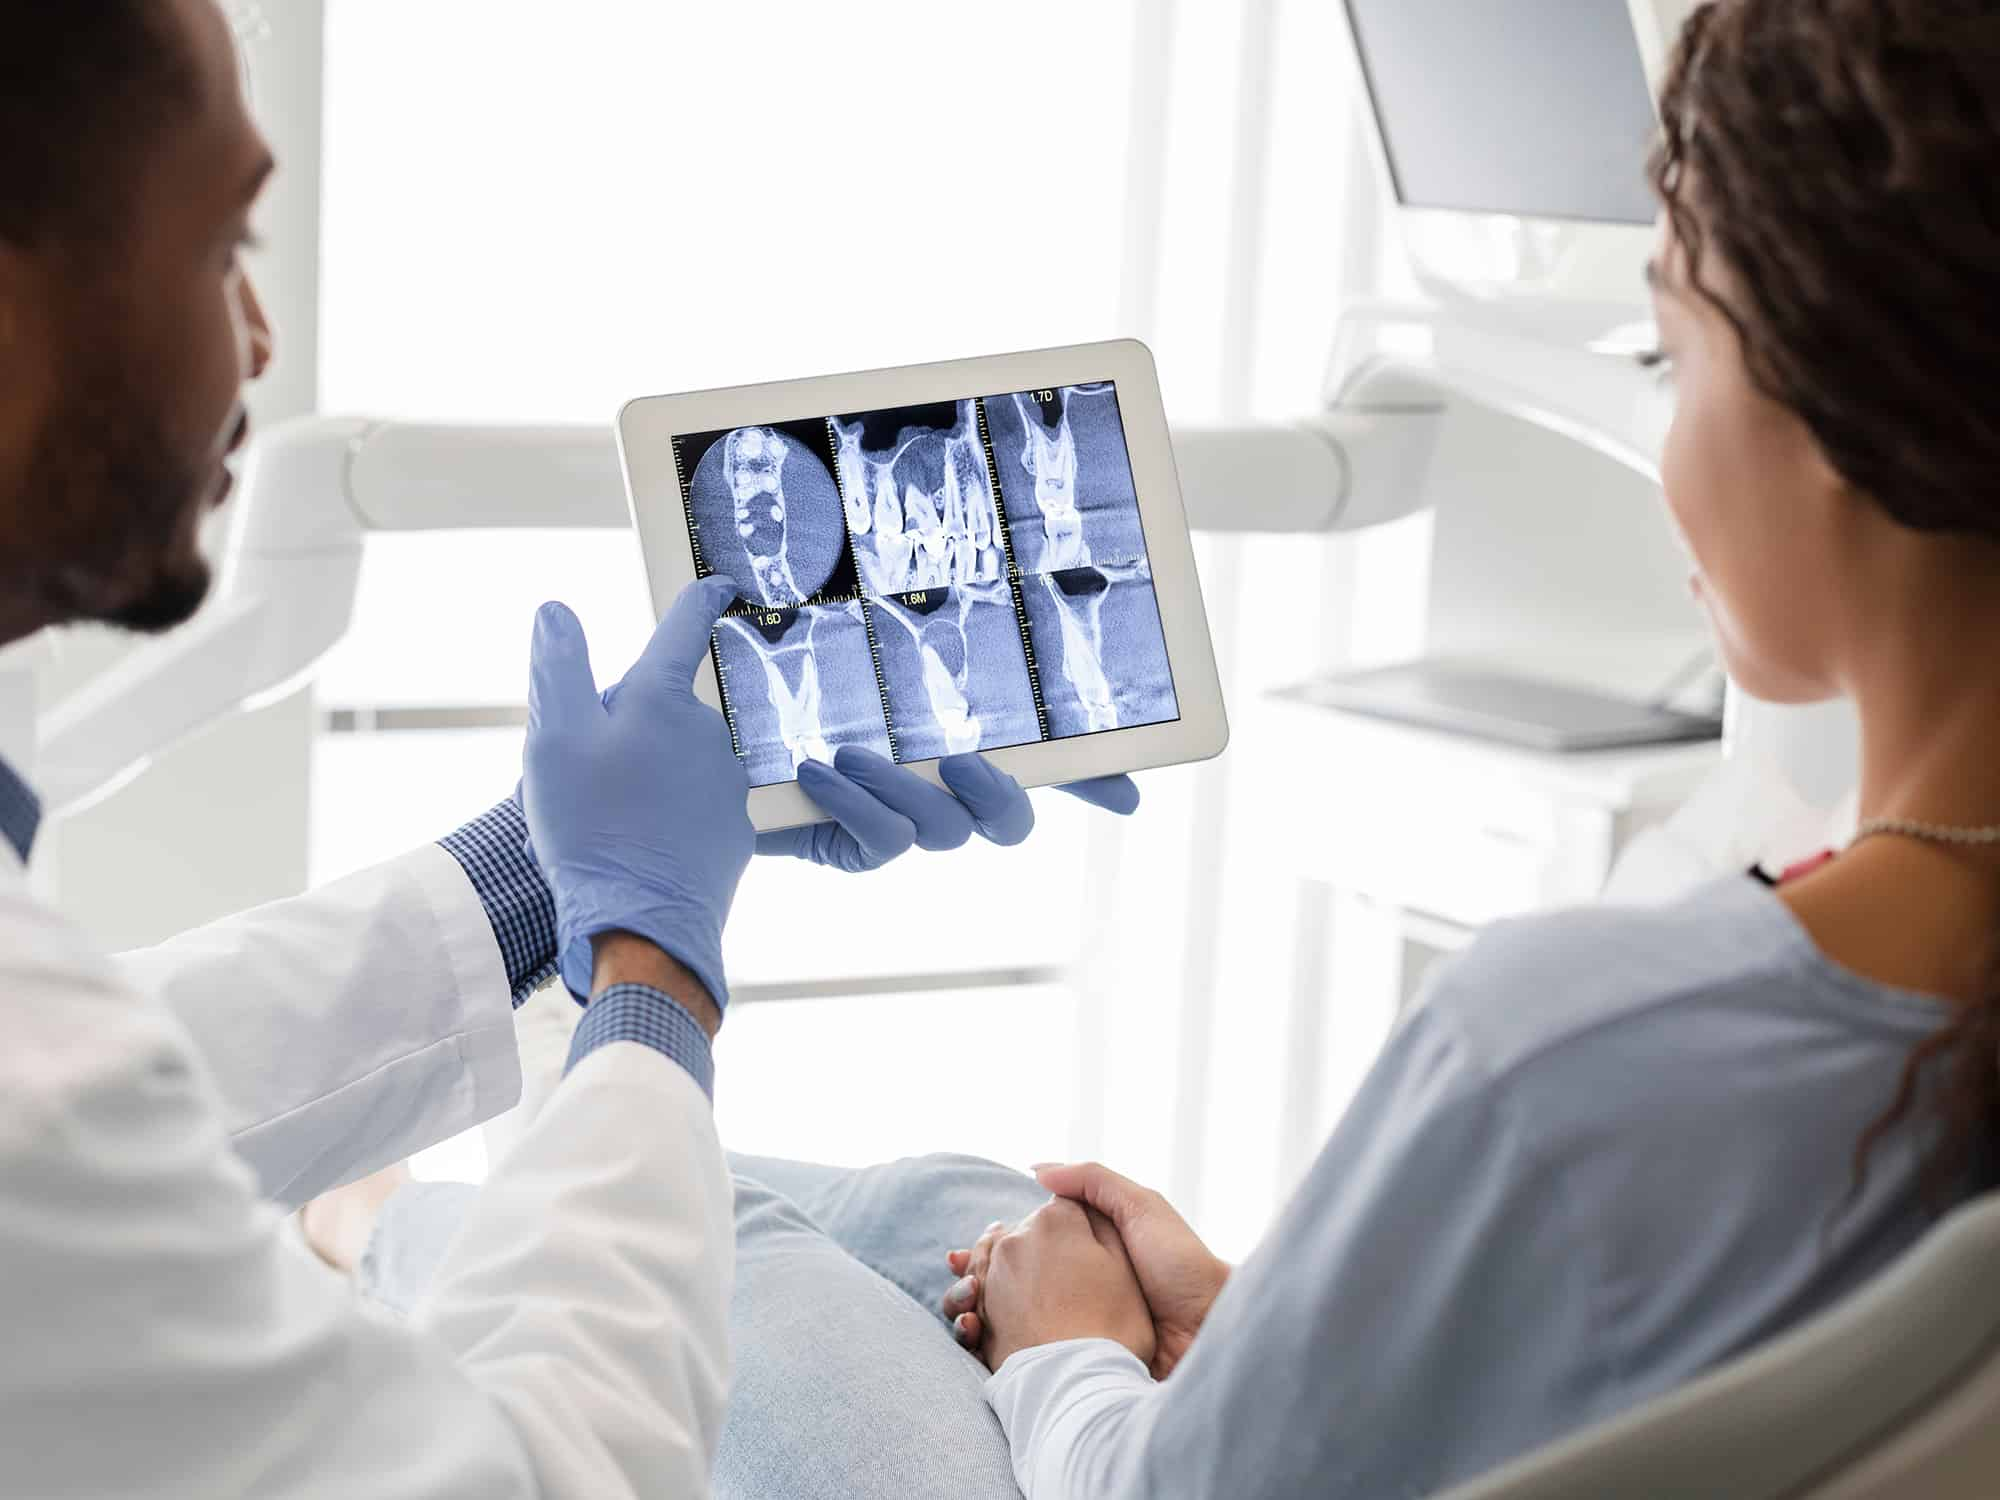 How to Present Treatment Plans to Your New Dental Patients